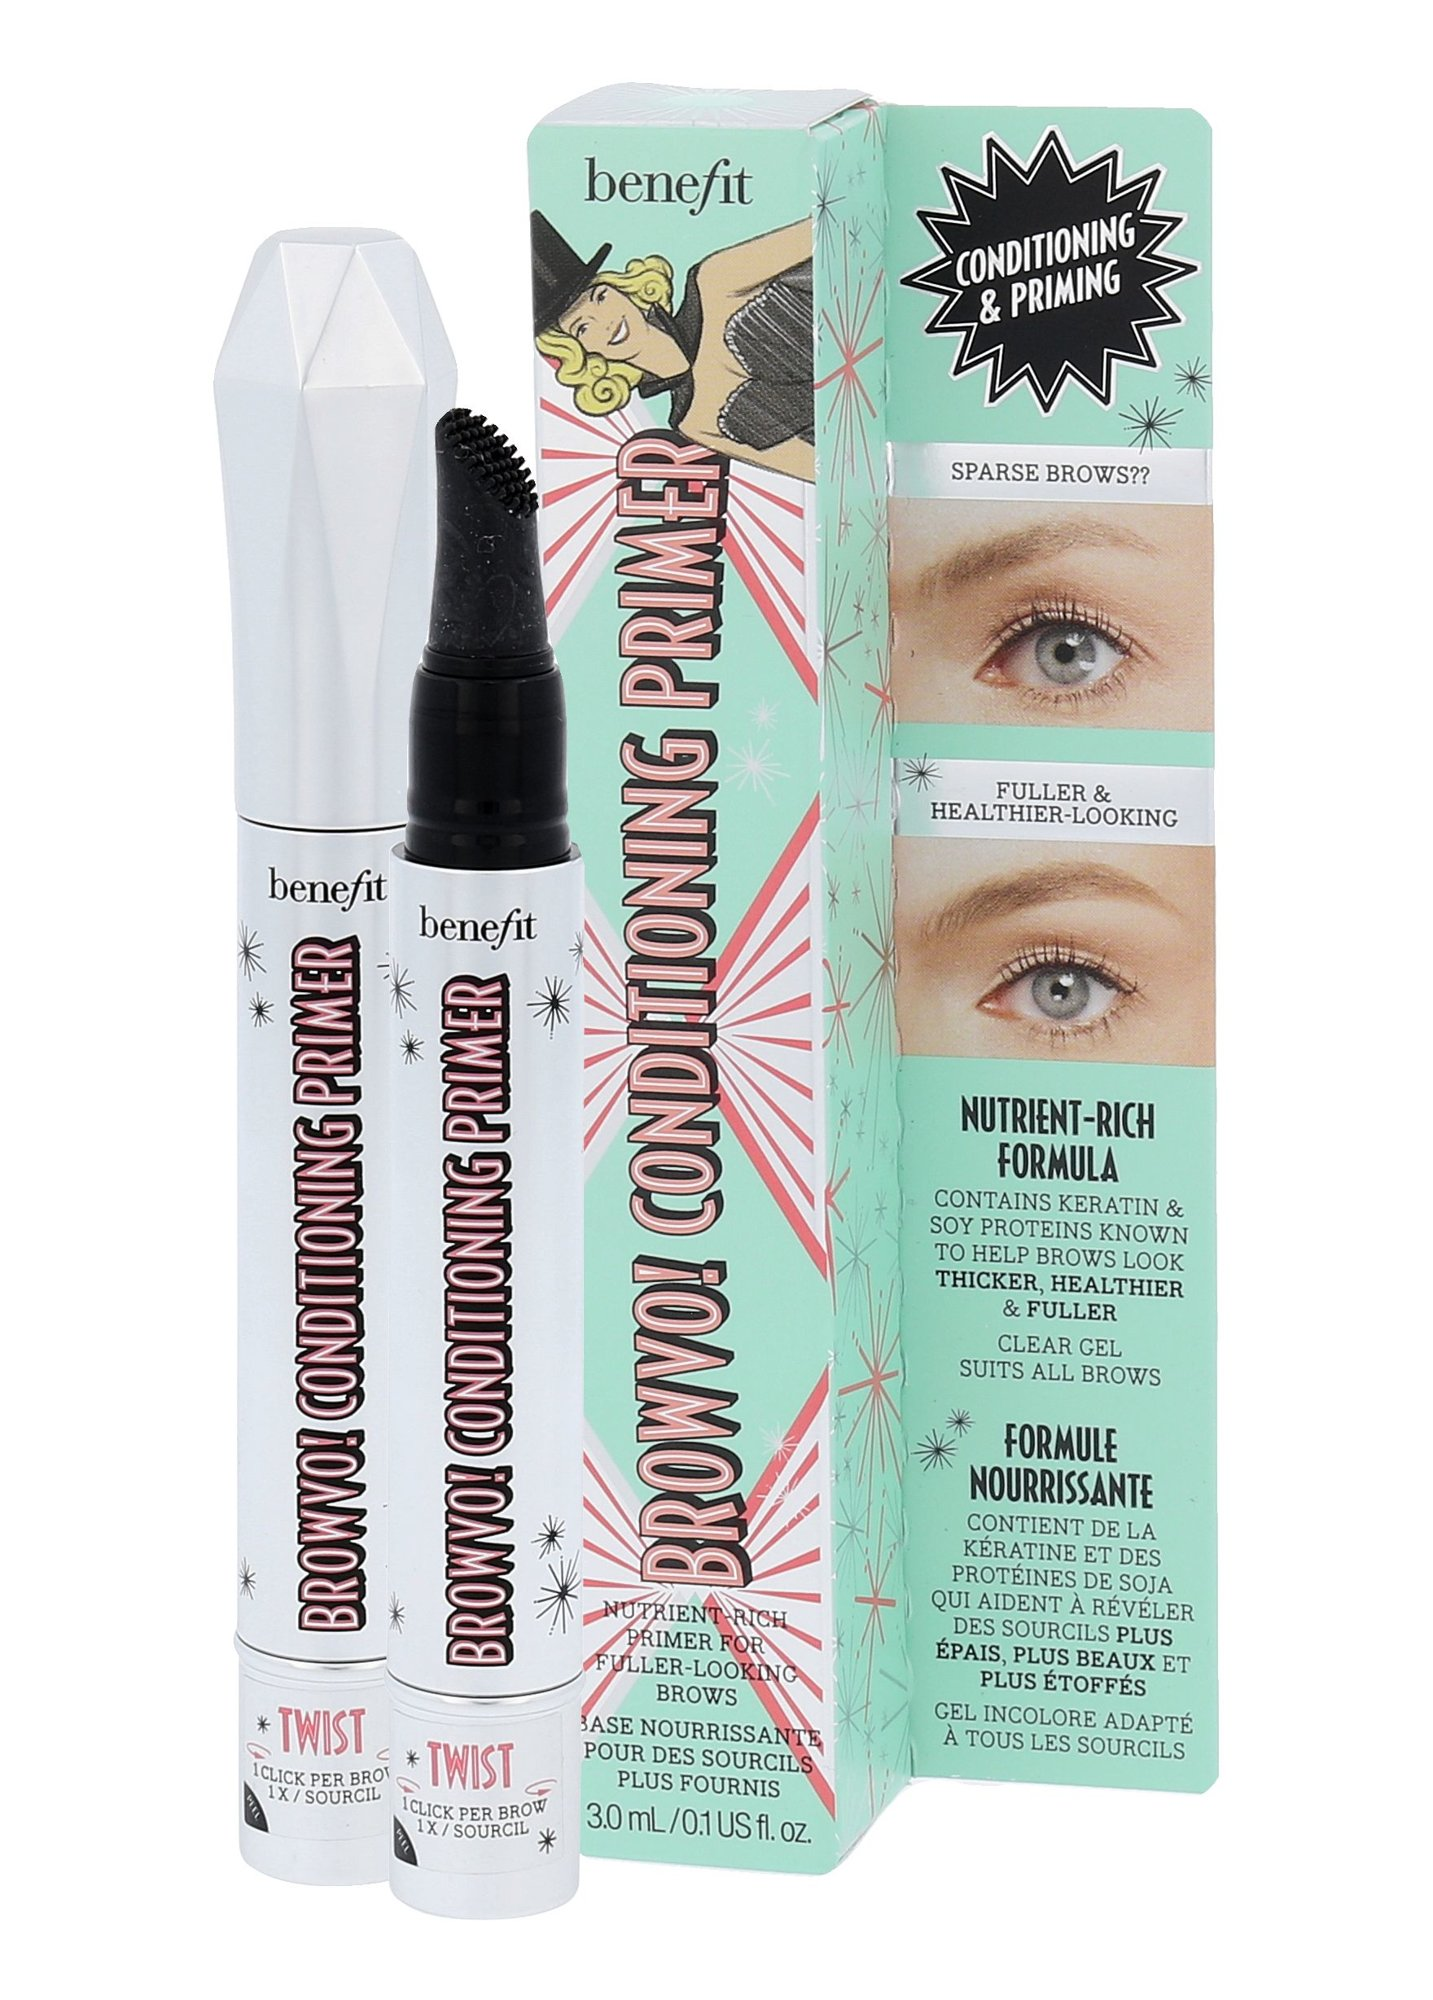 Benefit Browvo! Conditioning Eyebrow Primer Cosmetic 3ml